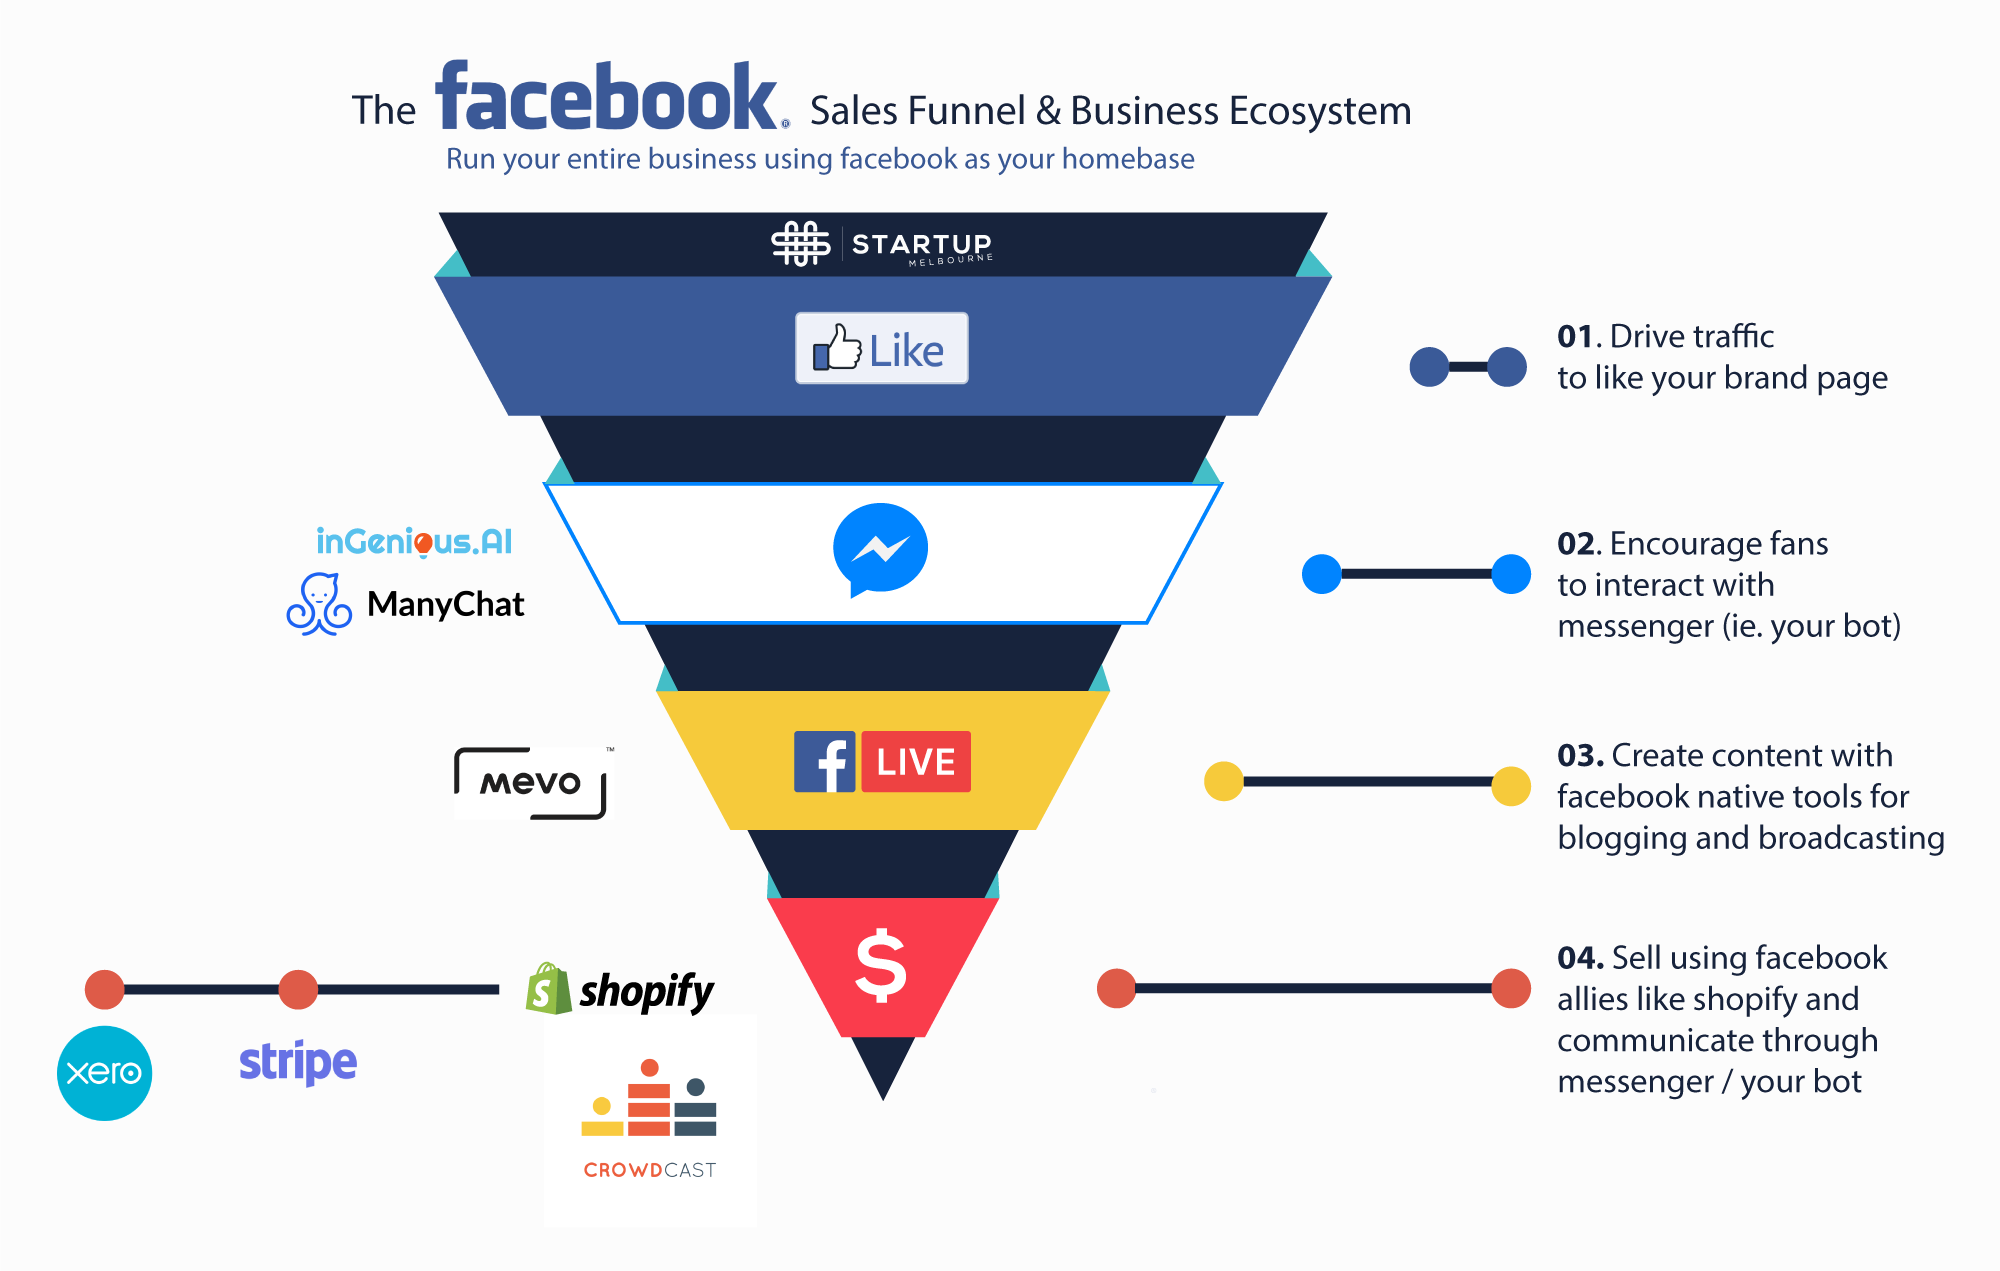 Facebook sales funnel infographic